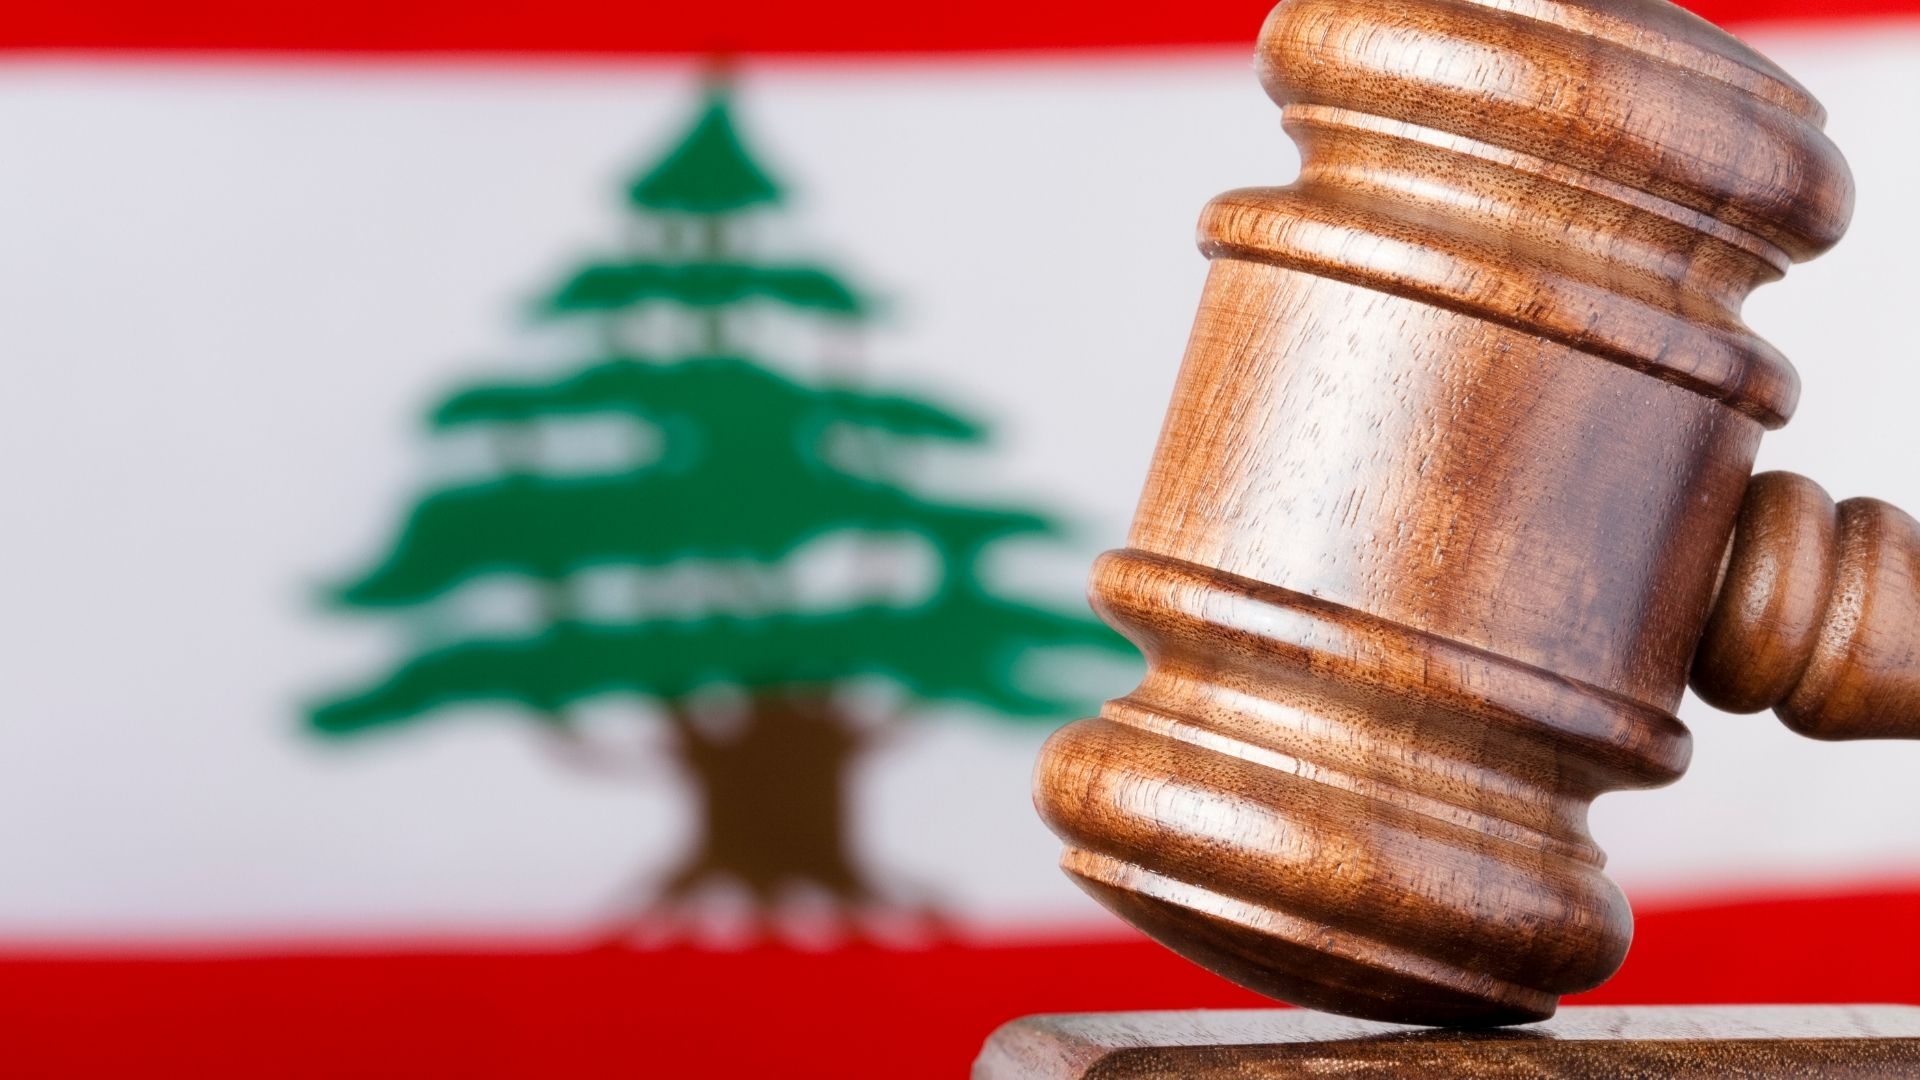 MSCI Reclassification of Lebanon